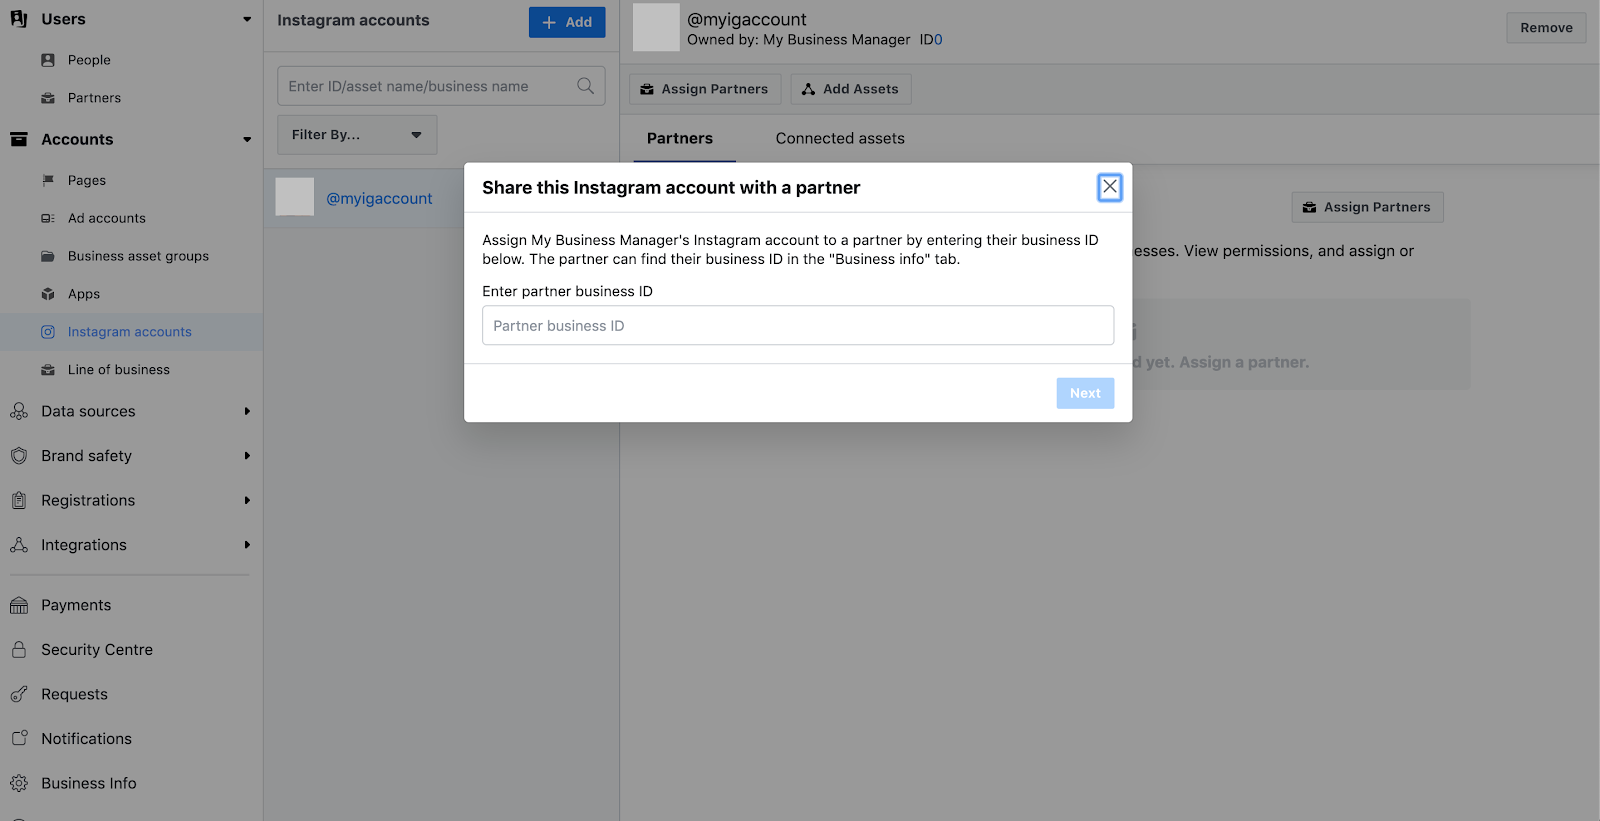 Assigning brand partner access in Facebook Business Manager